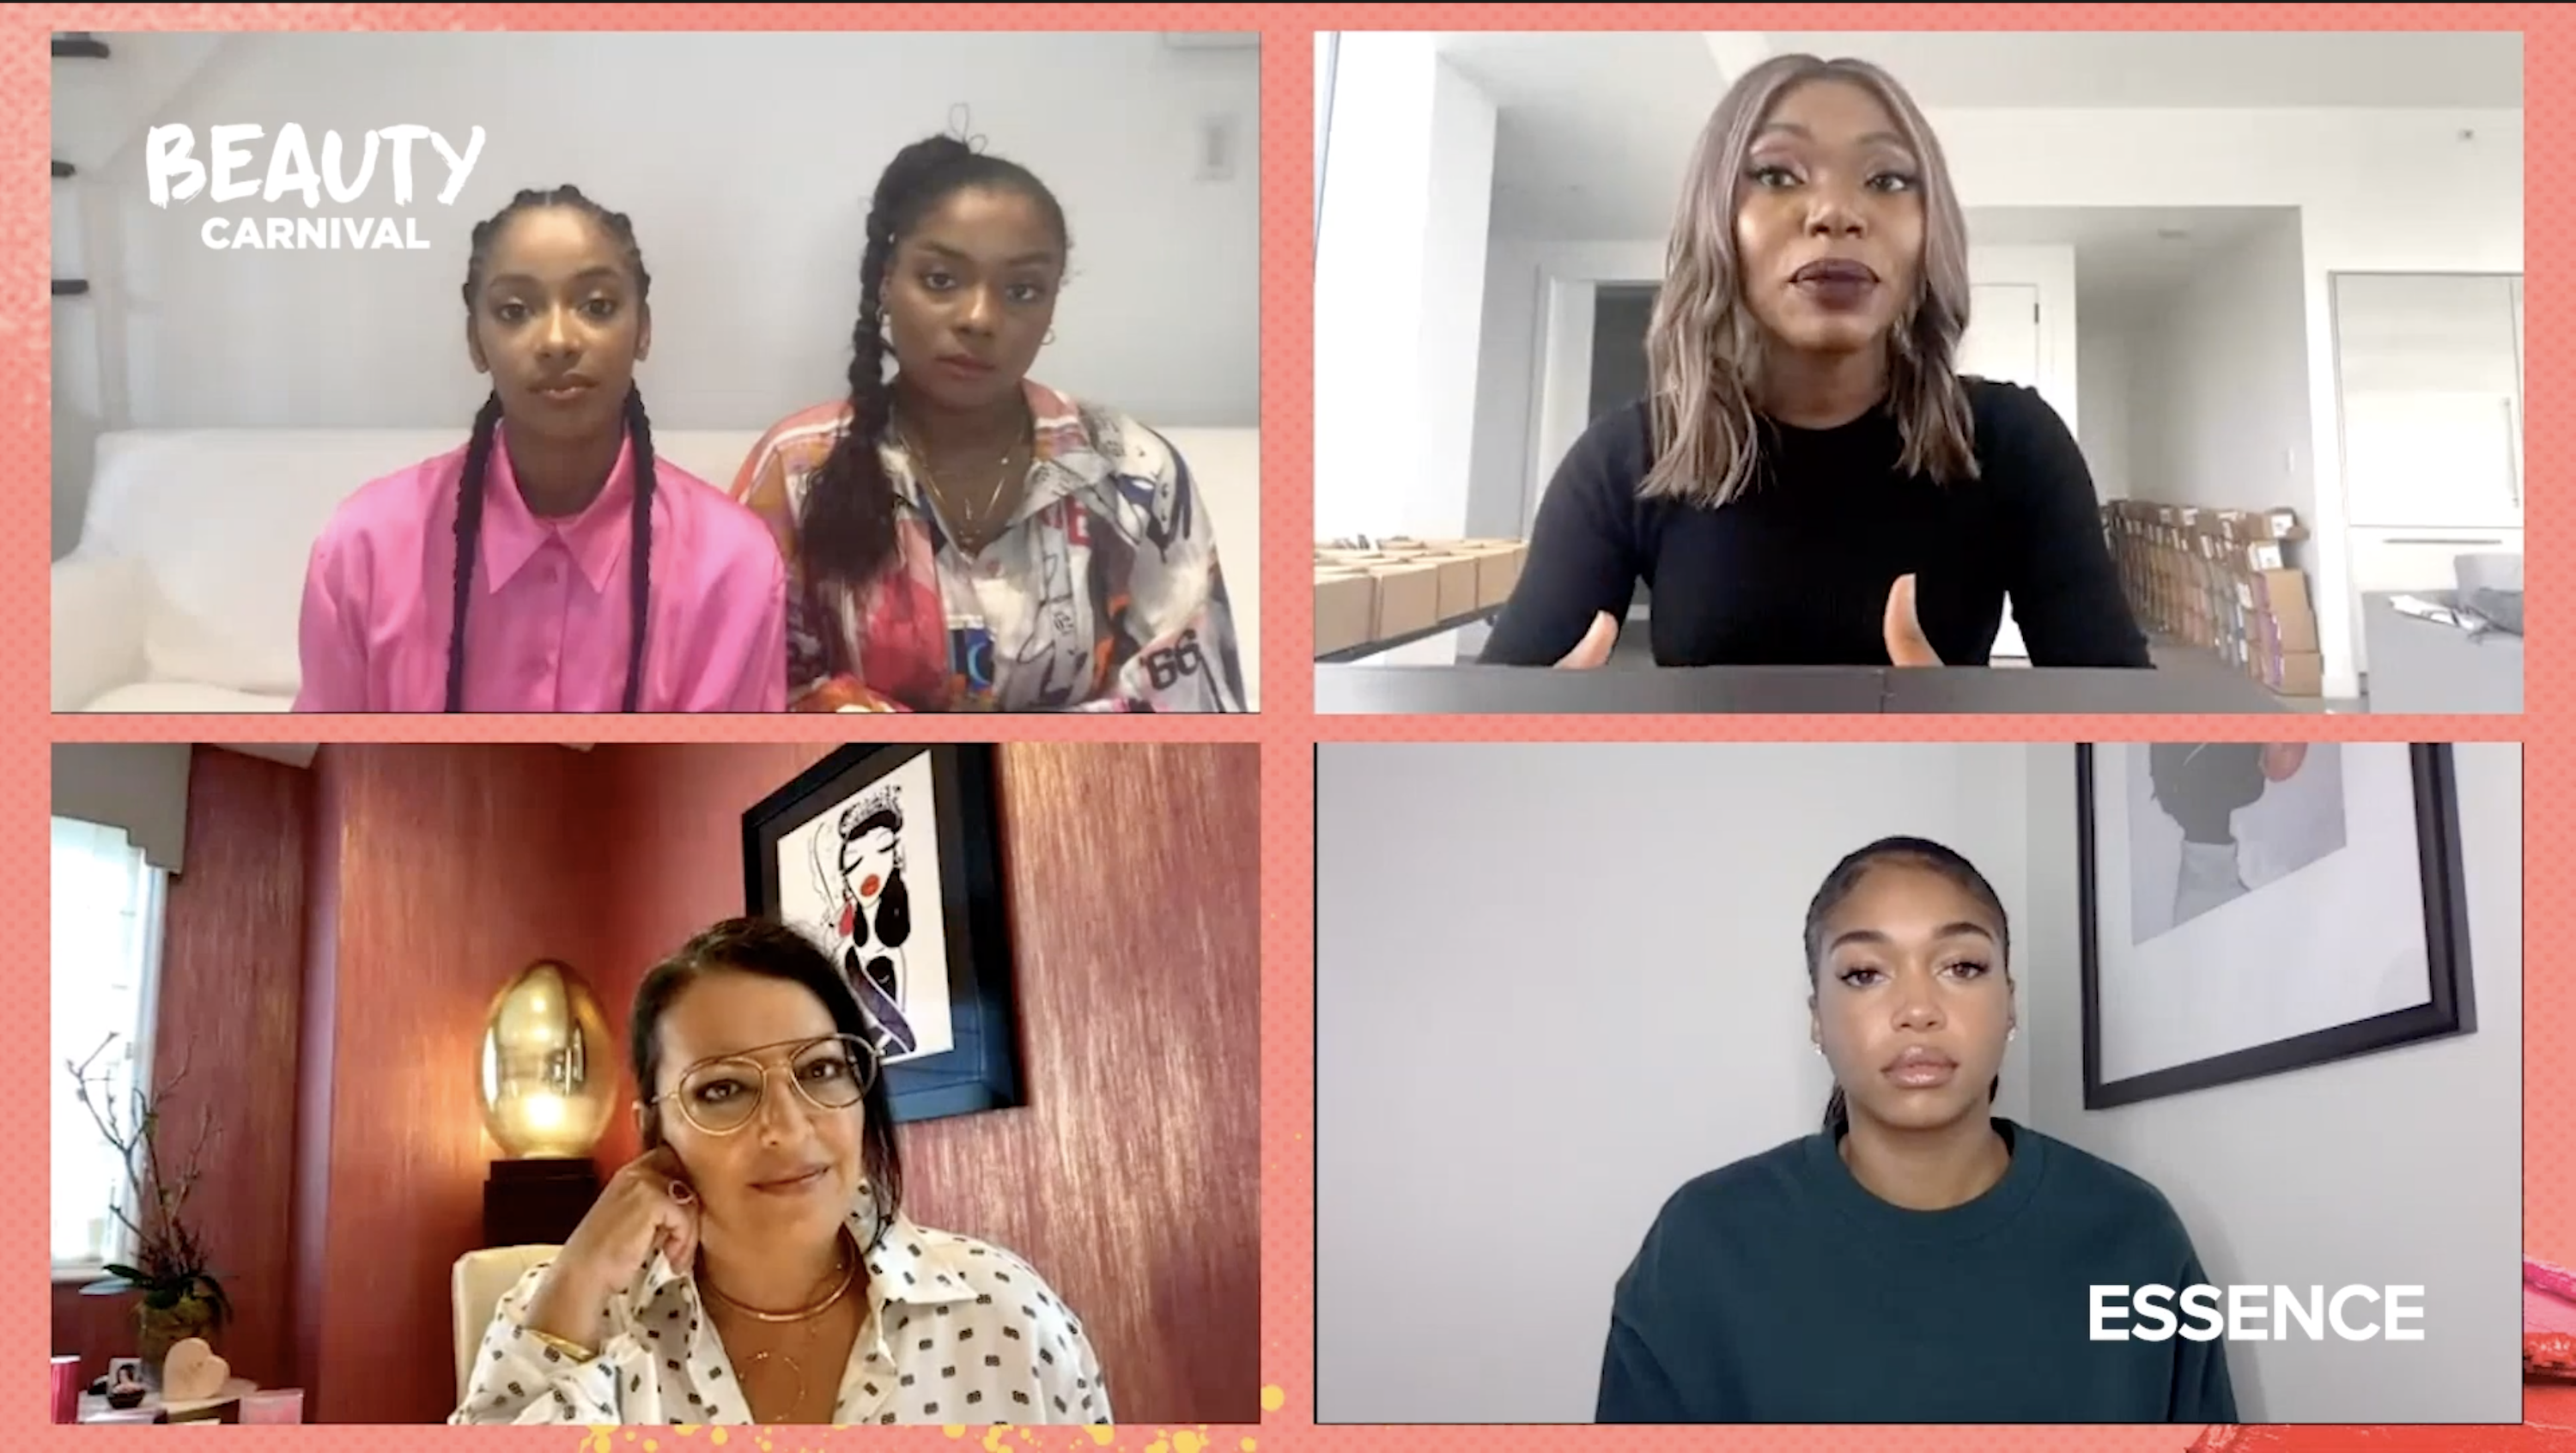 Sharon Chuter Explains the Pull Up Challenge on ESSENCE Festival Beauty Carnival